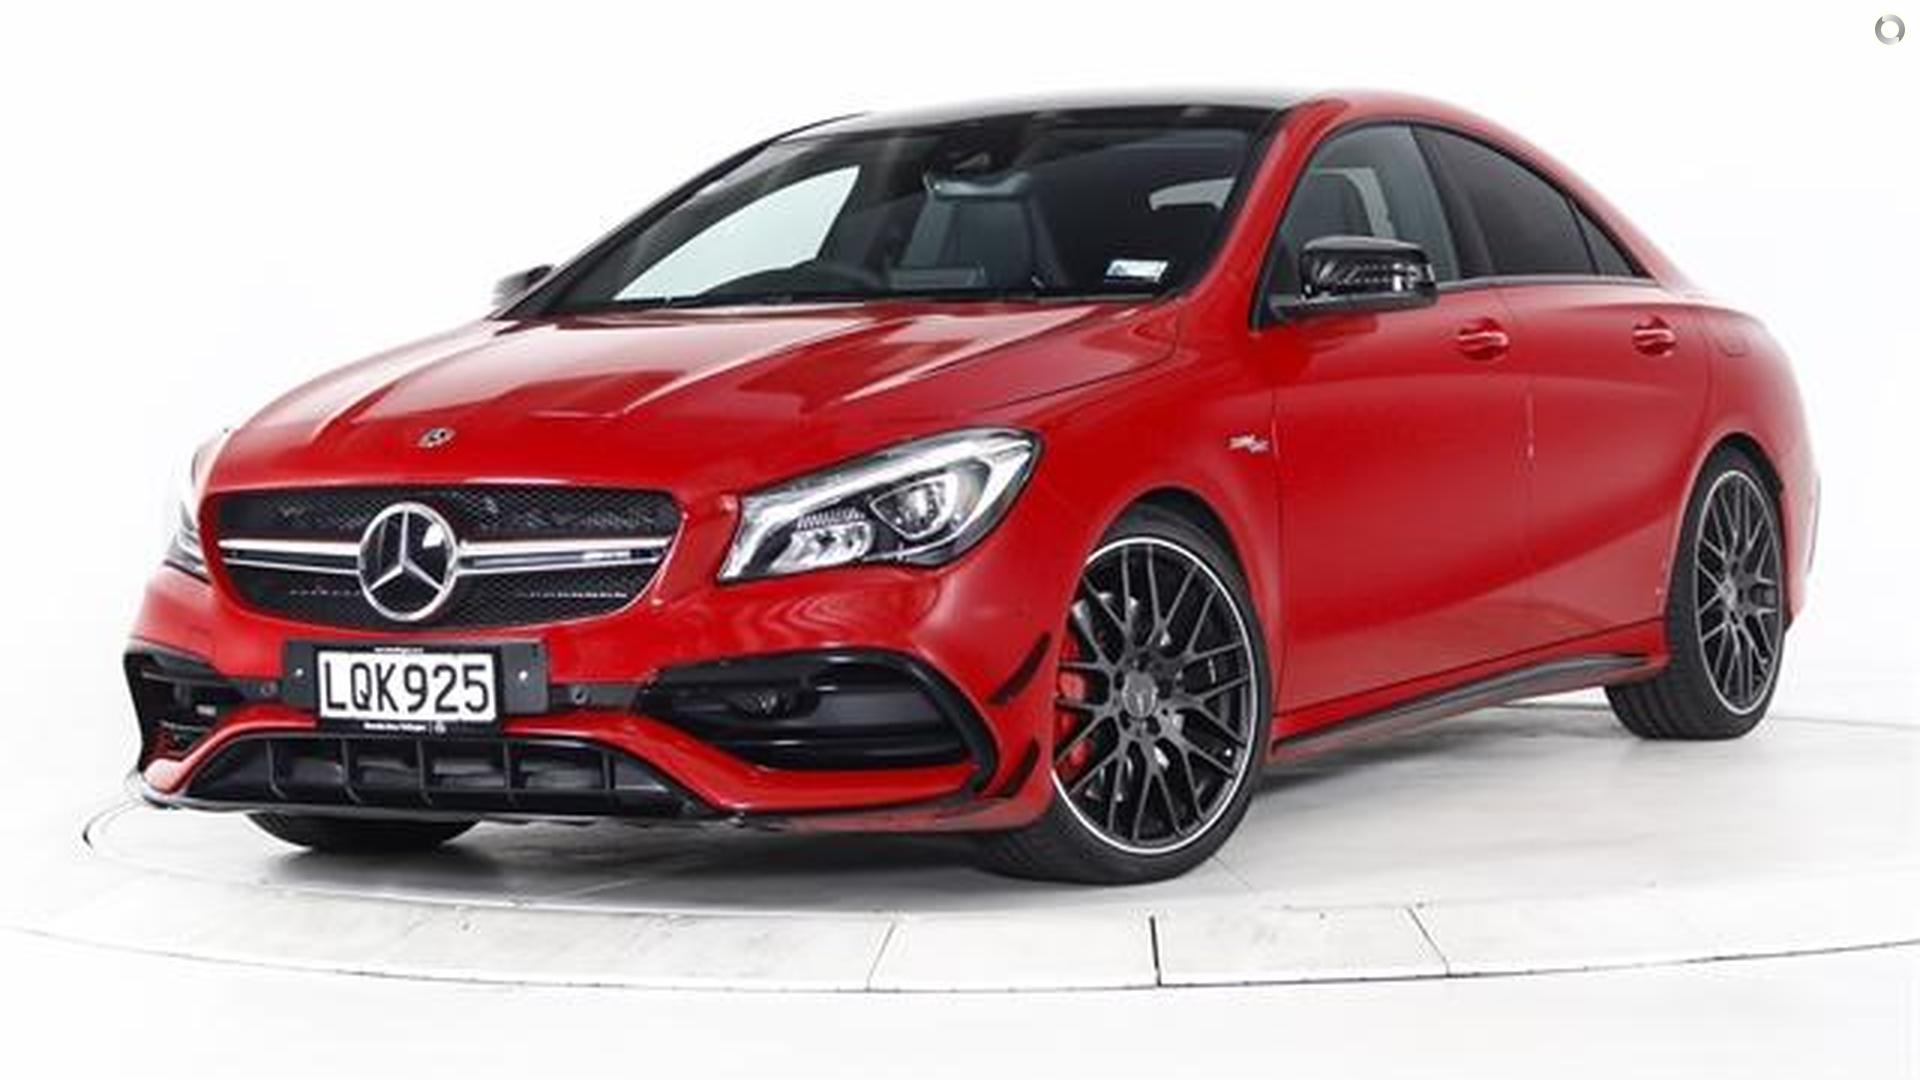 2018 Mercedes-AMG CLA 45 Coupe